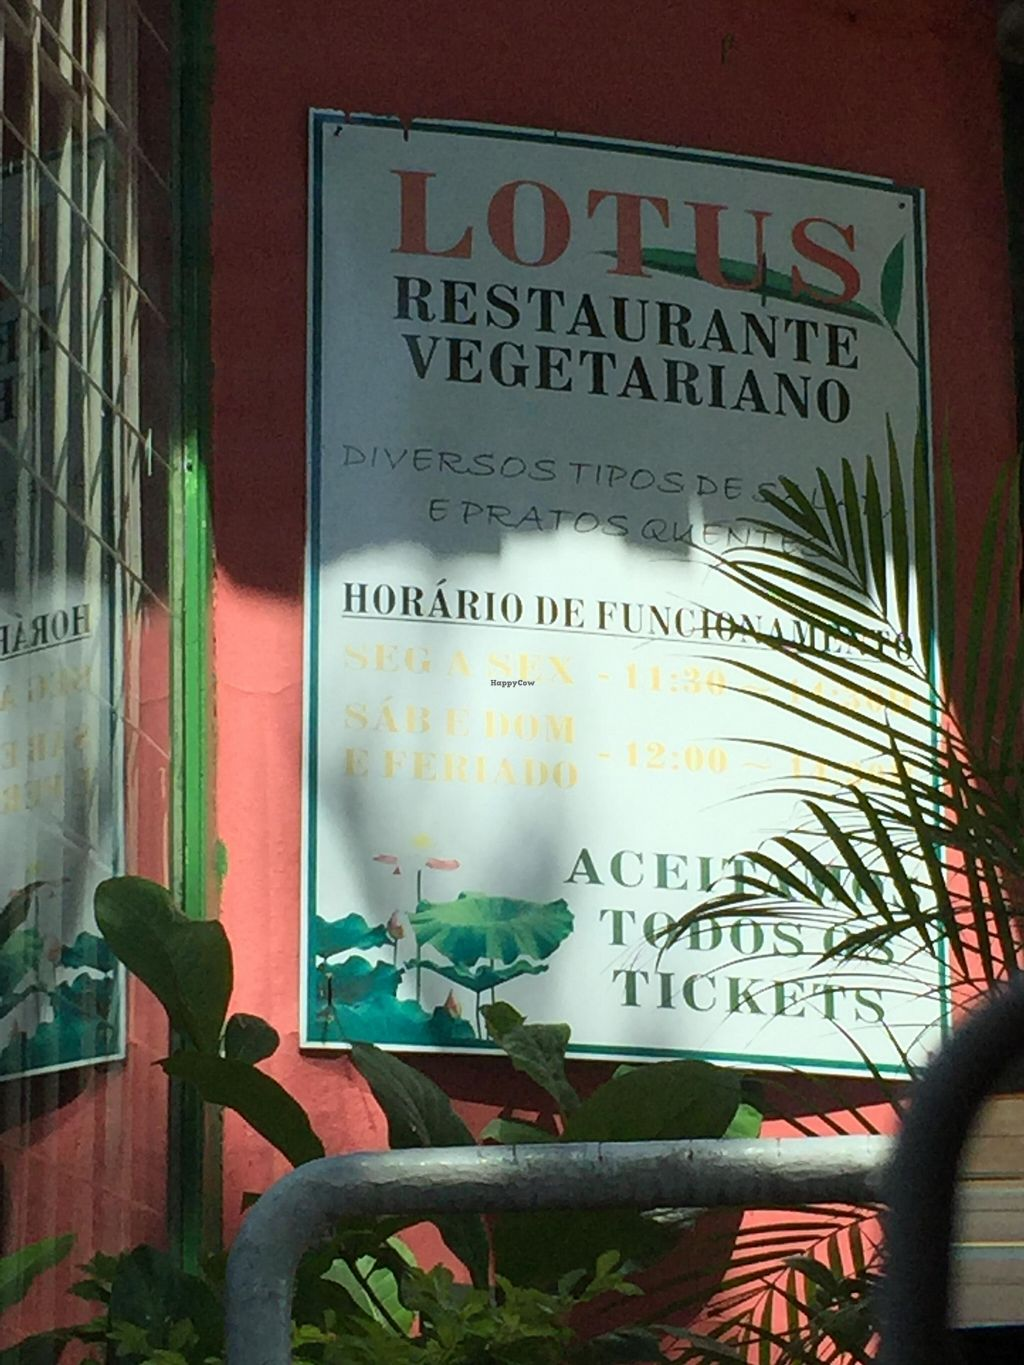 """Photo of Lotus Restaurante Vegetariano  by <a href=""""/members/profile/Paolla"""">Paolla</a> <br/>Lotus - Vegetarian restaurant <br/> January 7, 2016  - <a href='/contact/abuse/image/44859/131416'>Report</a>"""